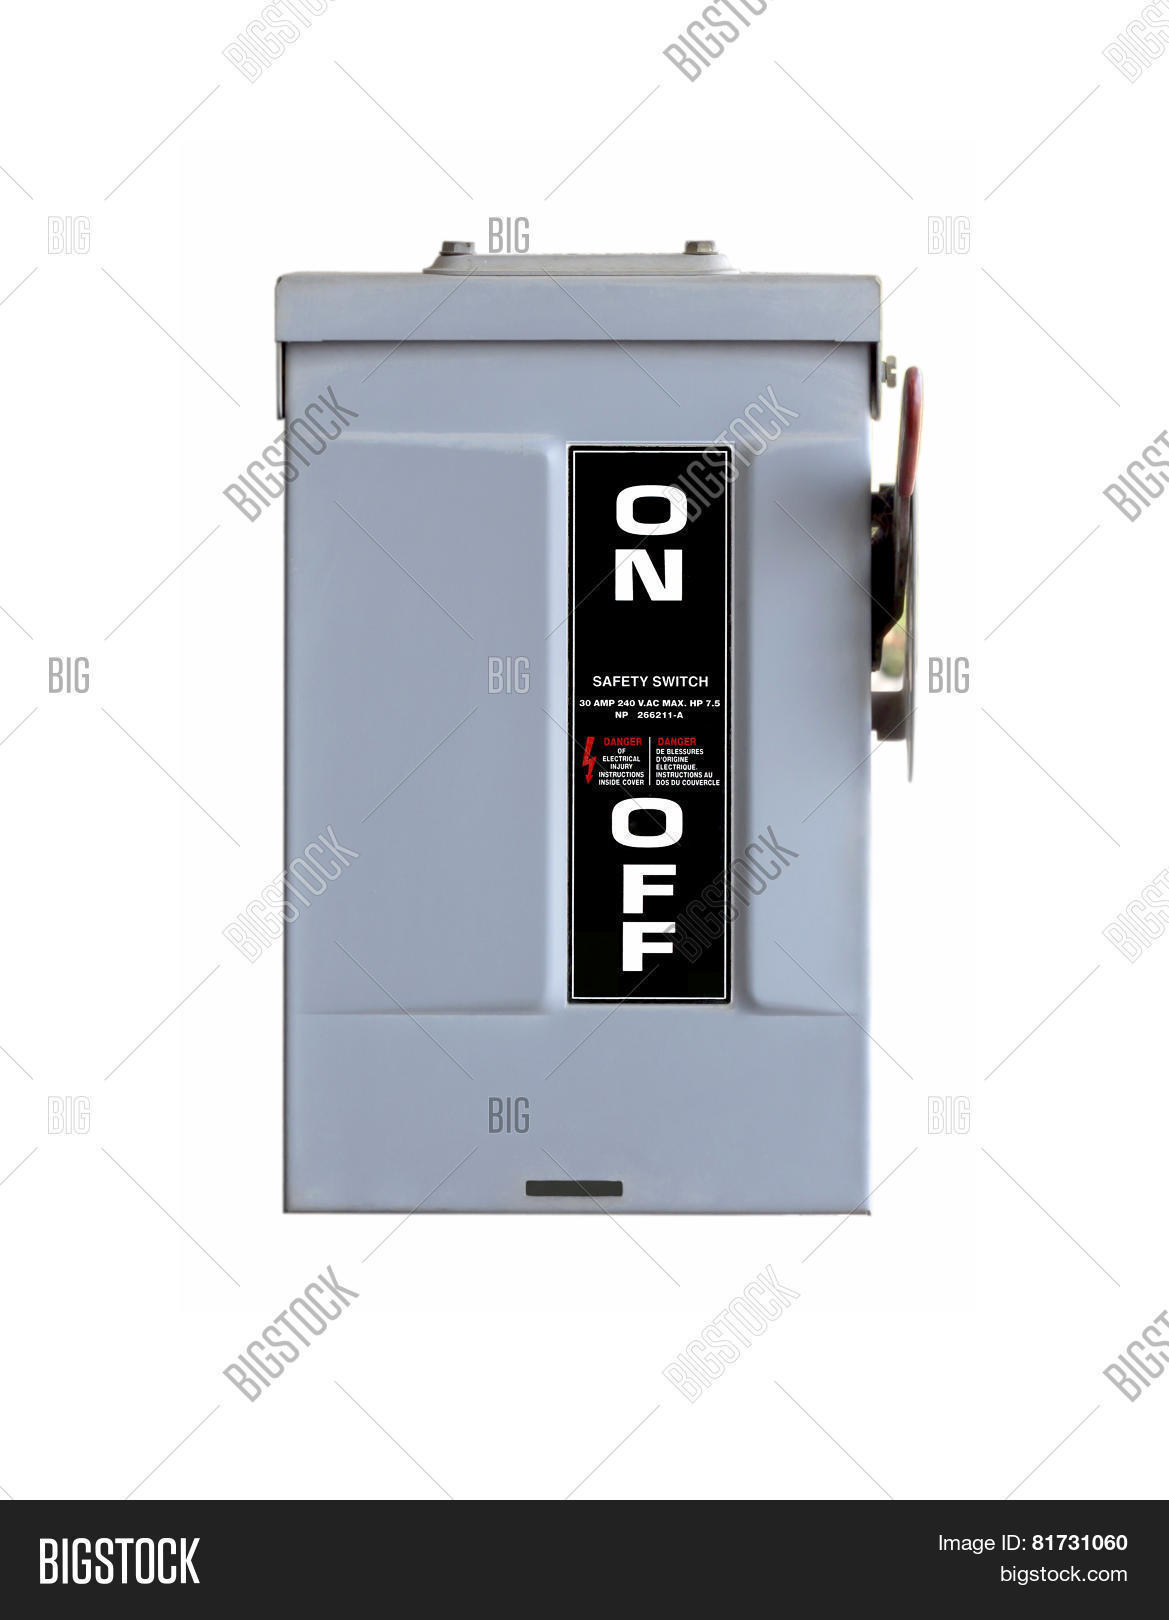 Electrical Safety Image Photo Free Trial Bigstock